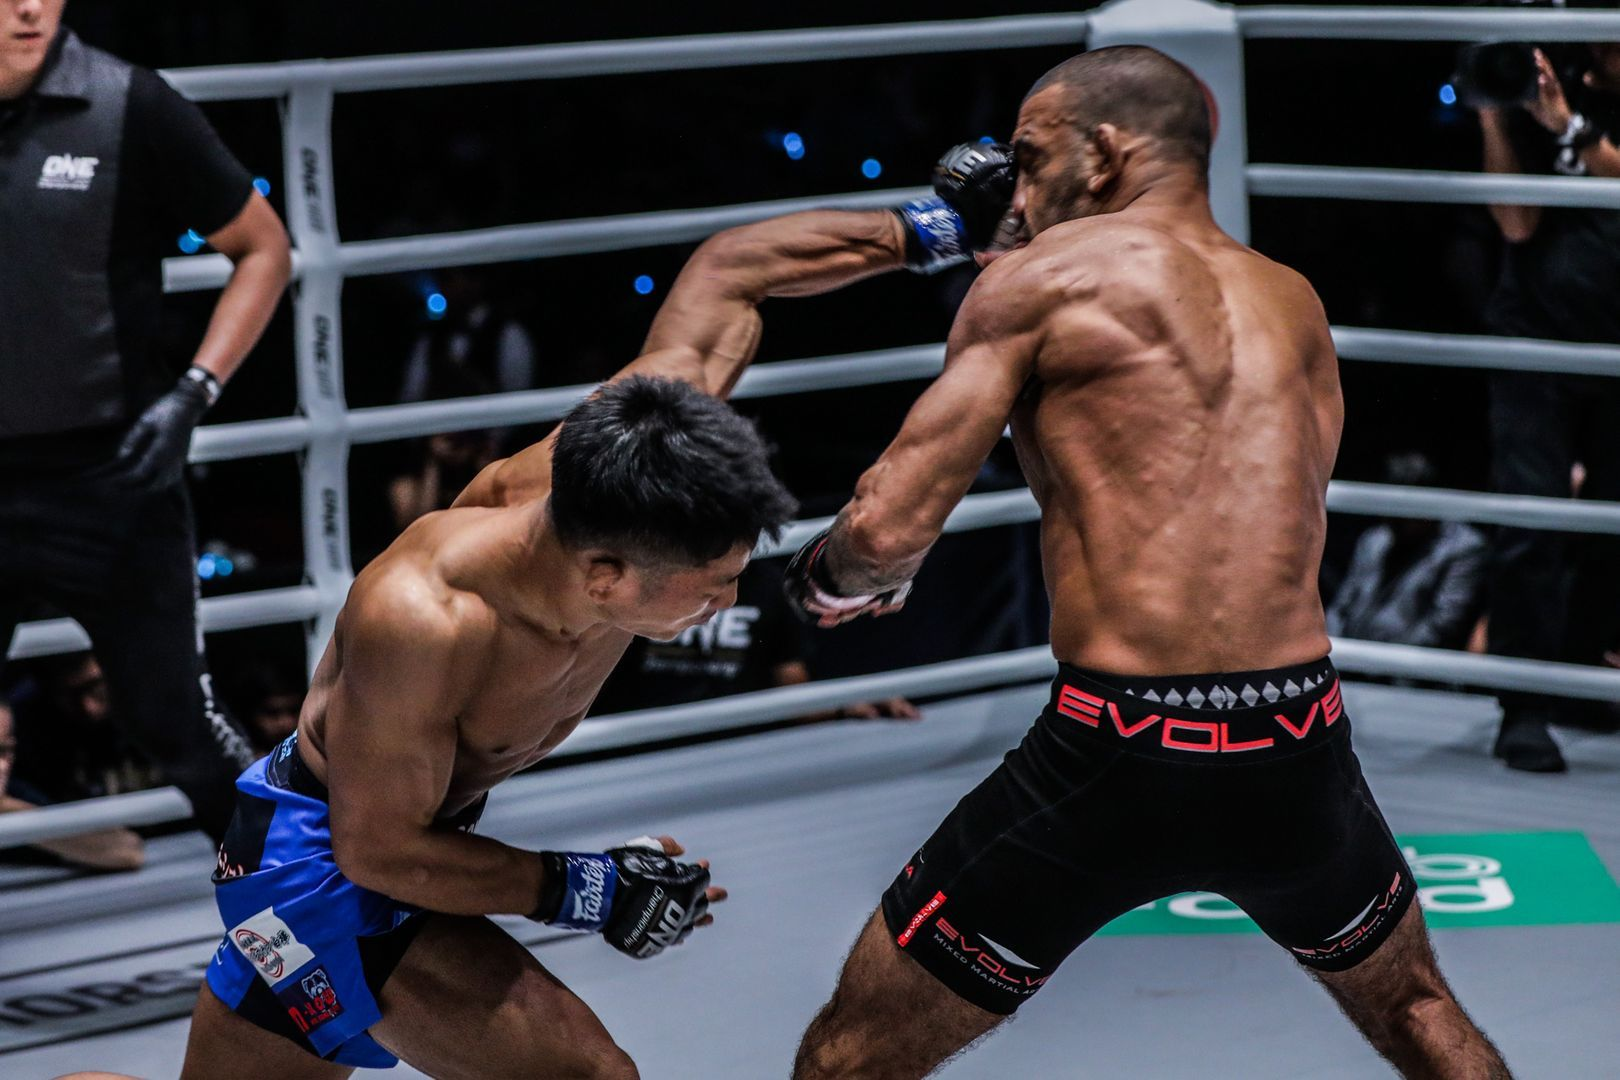 Daichi Takenaka defeats Leandro Issa by knockout at ONE: DAWN OF HEROES